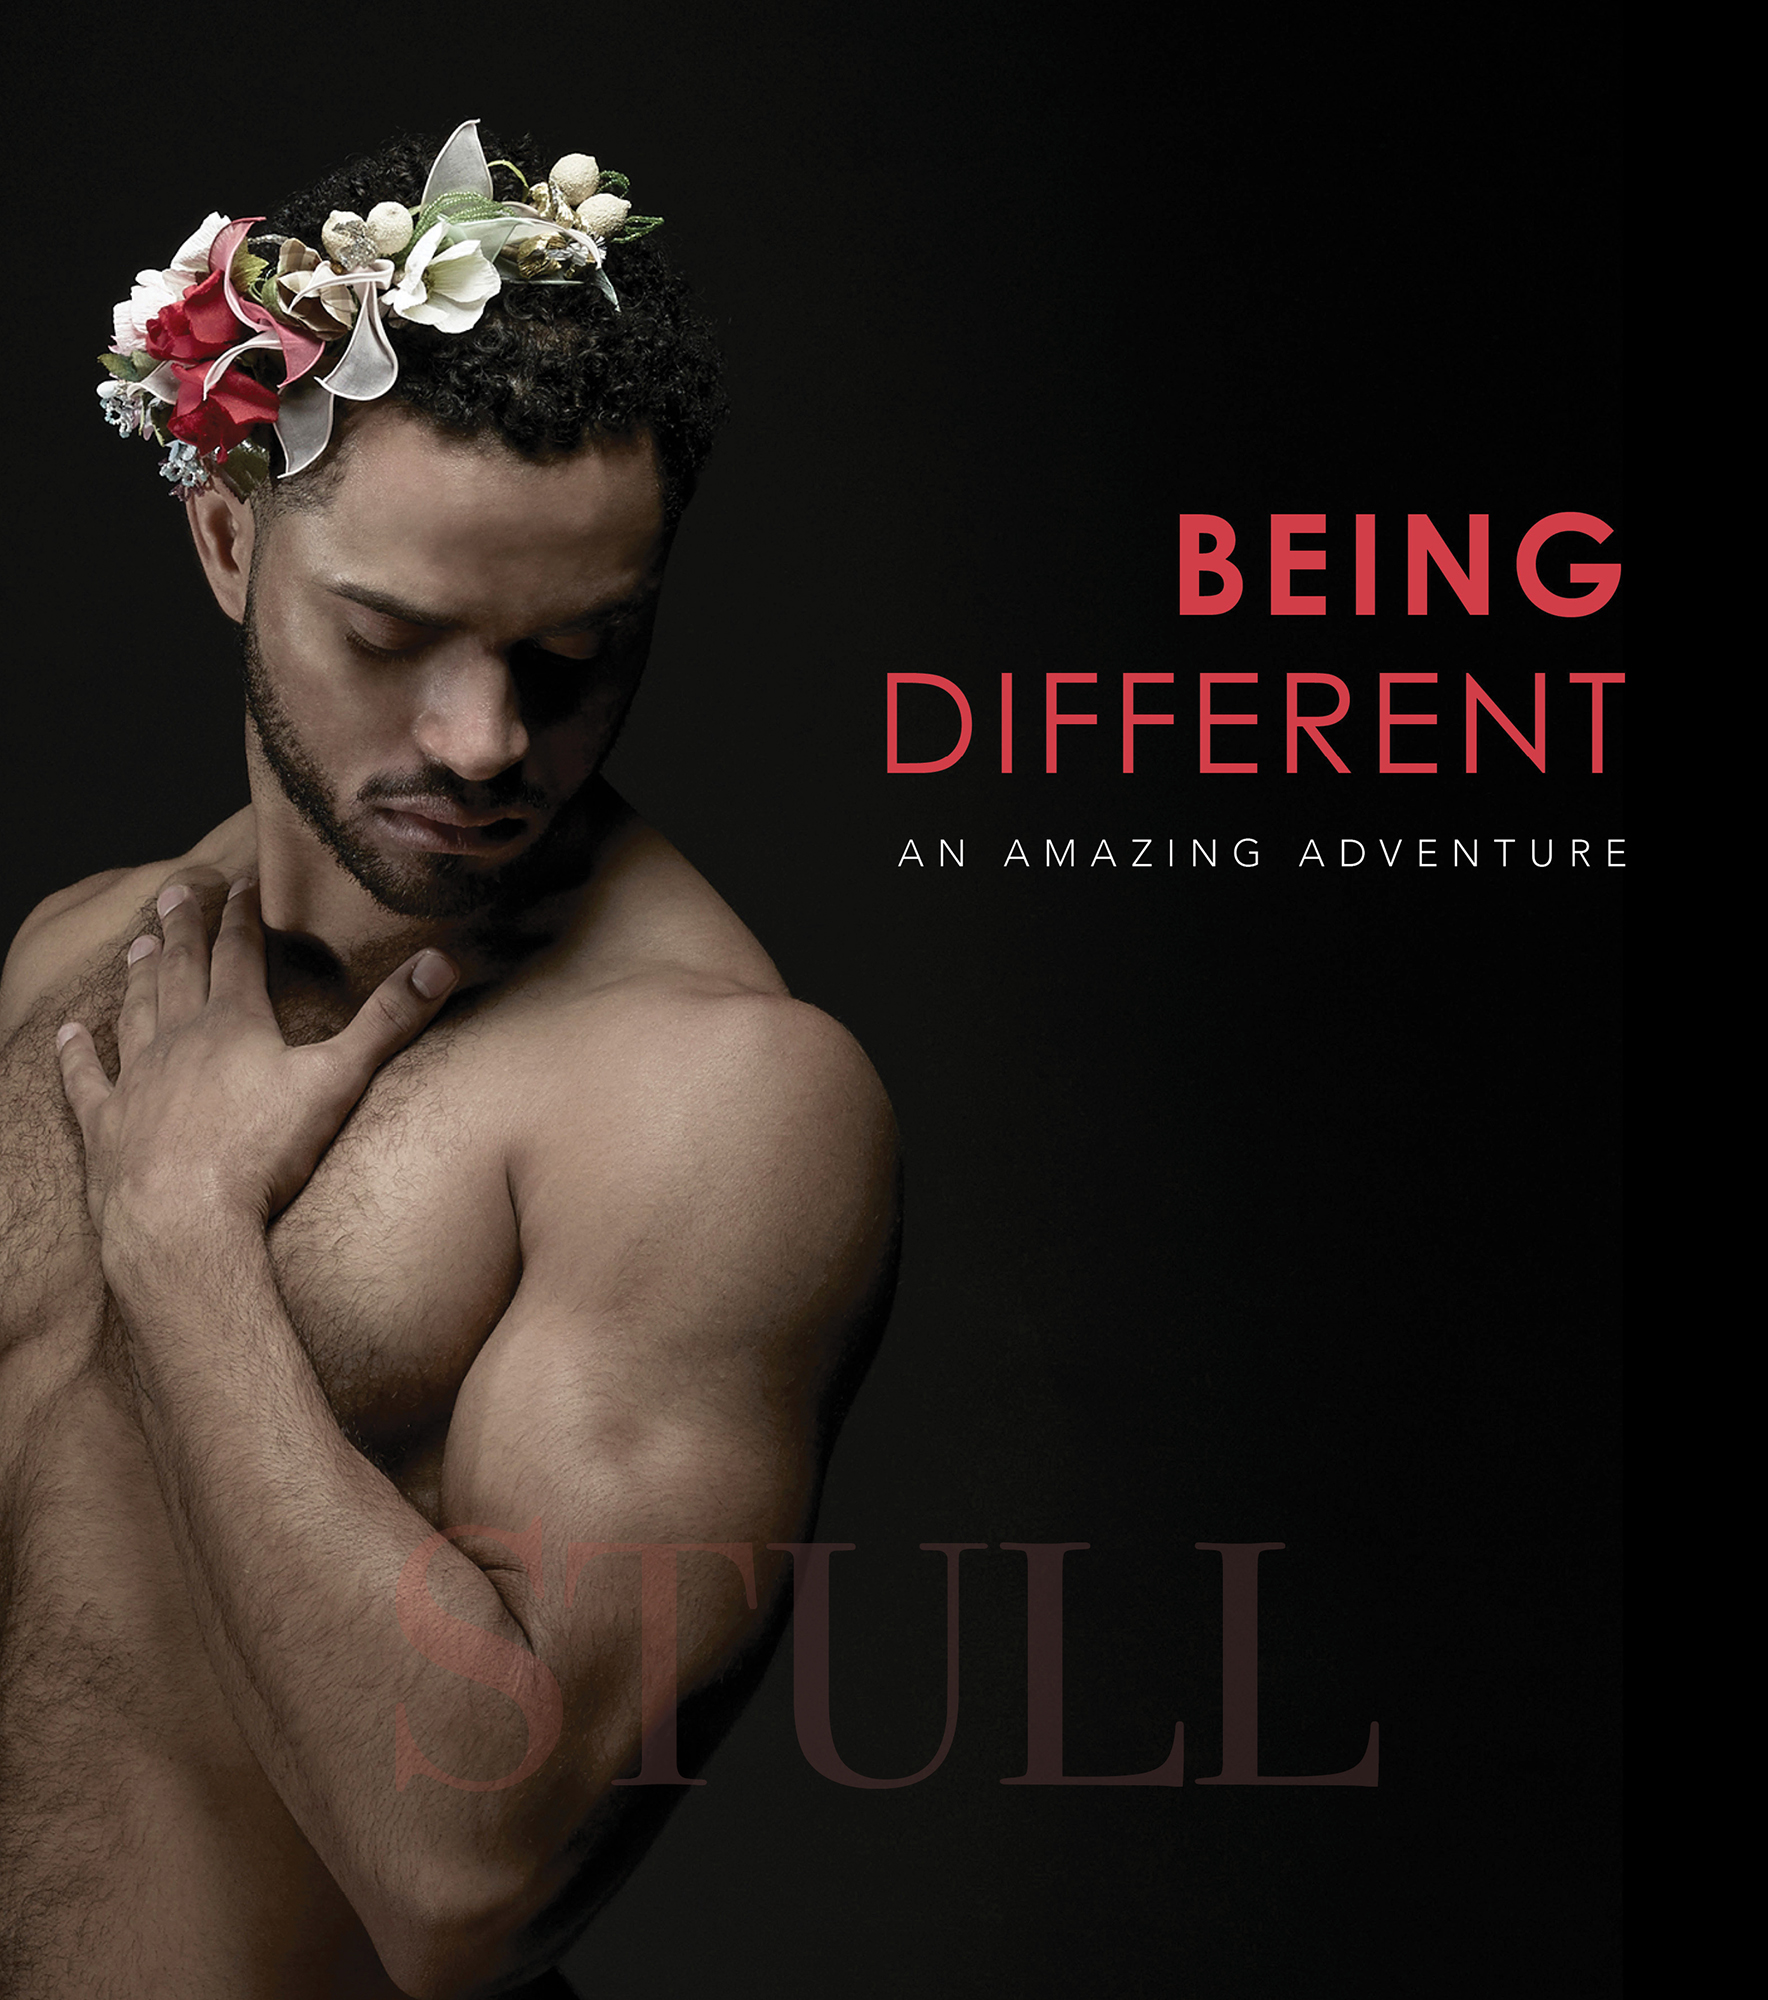 Being Different, By Patrick Stull